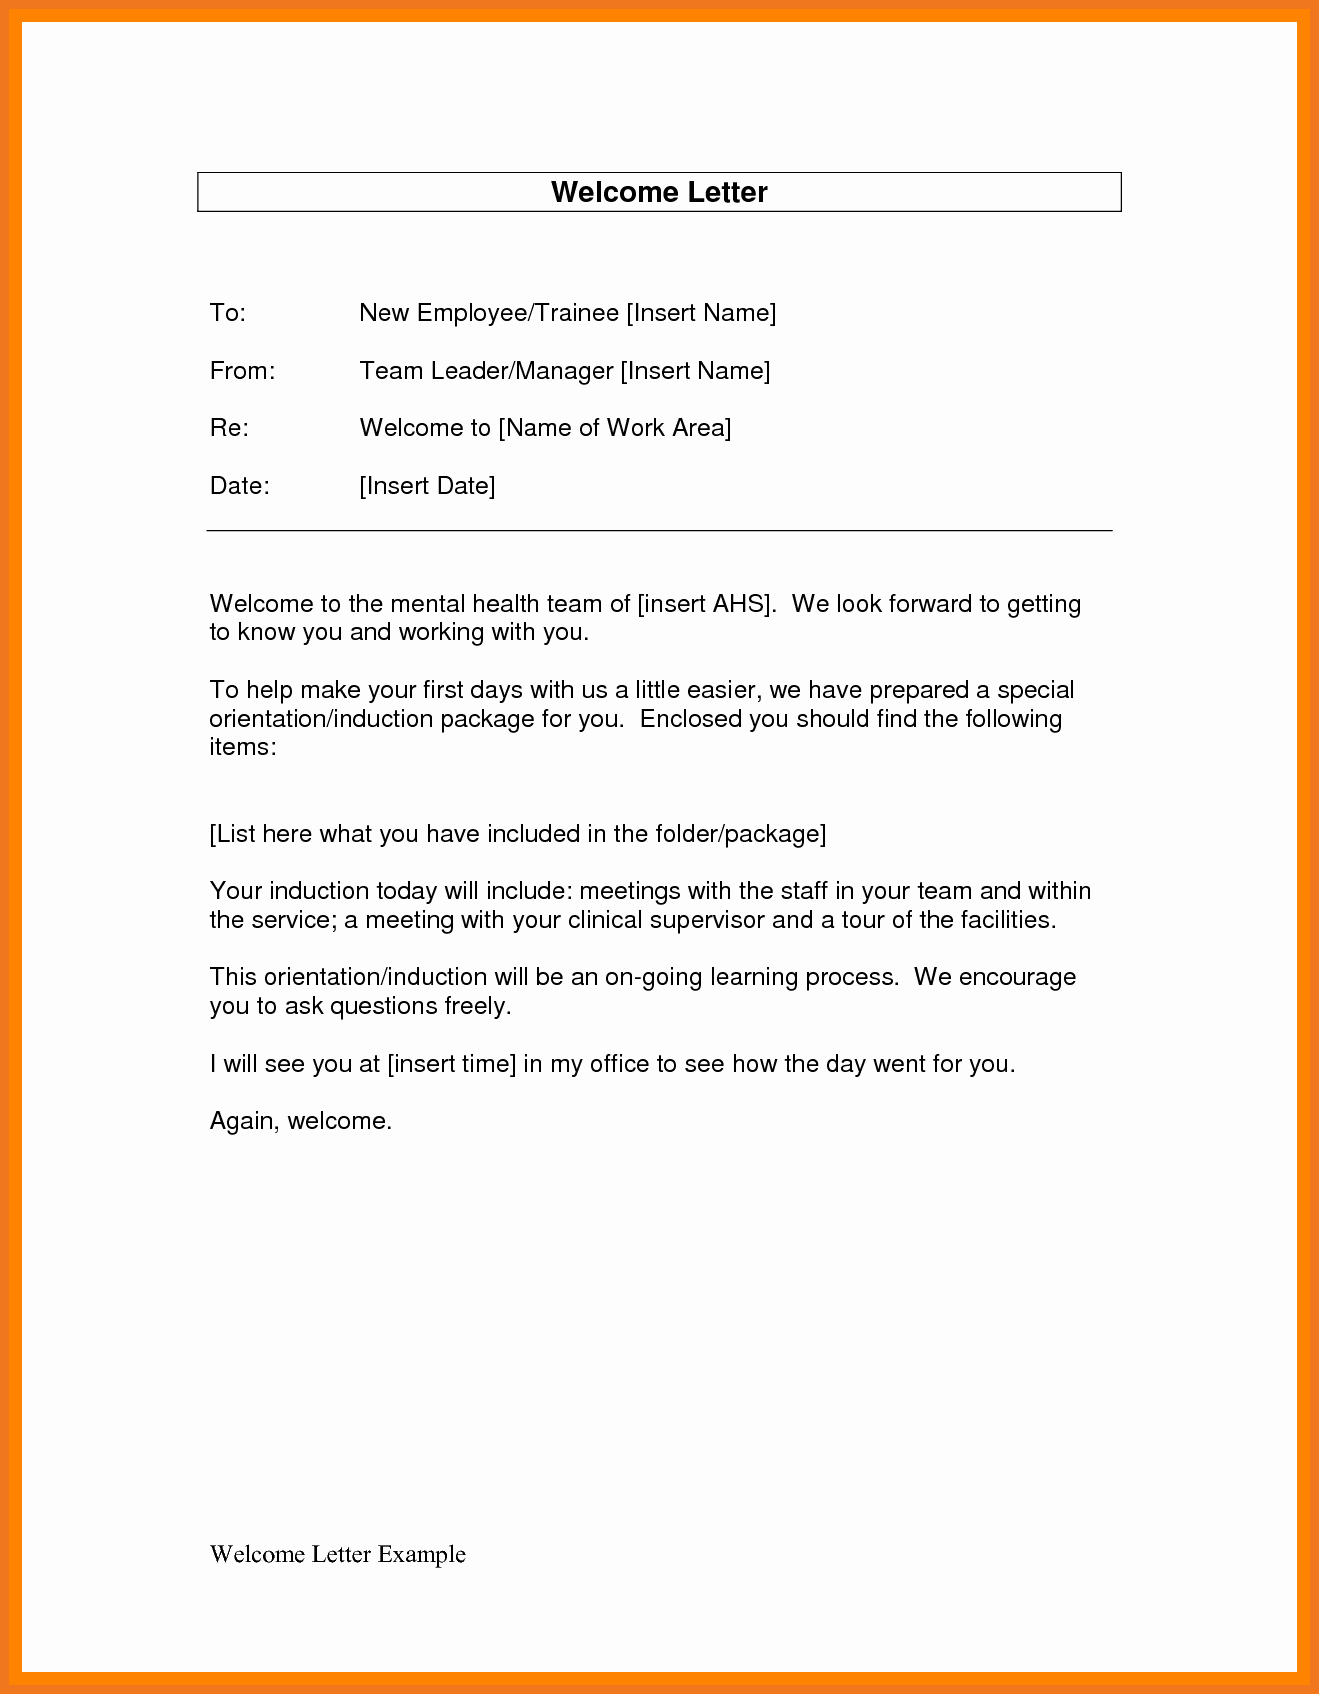 New Employee Welcome Letter New 6 7 Wel E Letter to New Employee